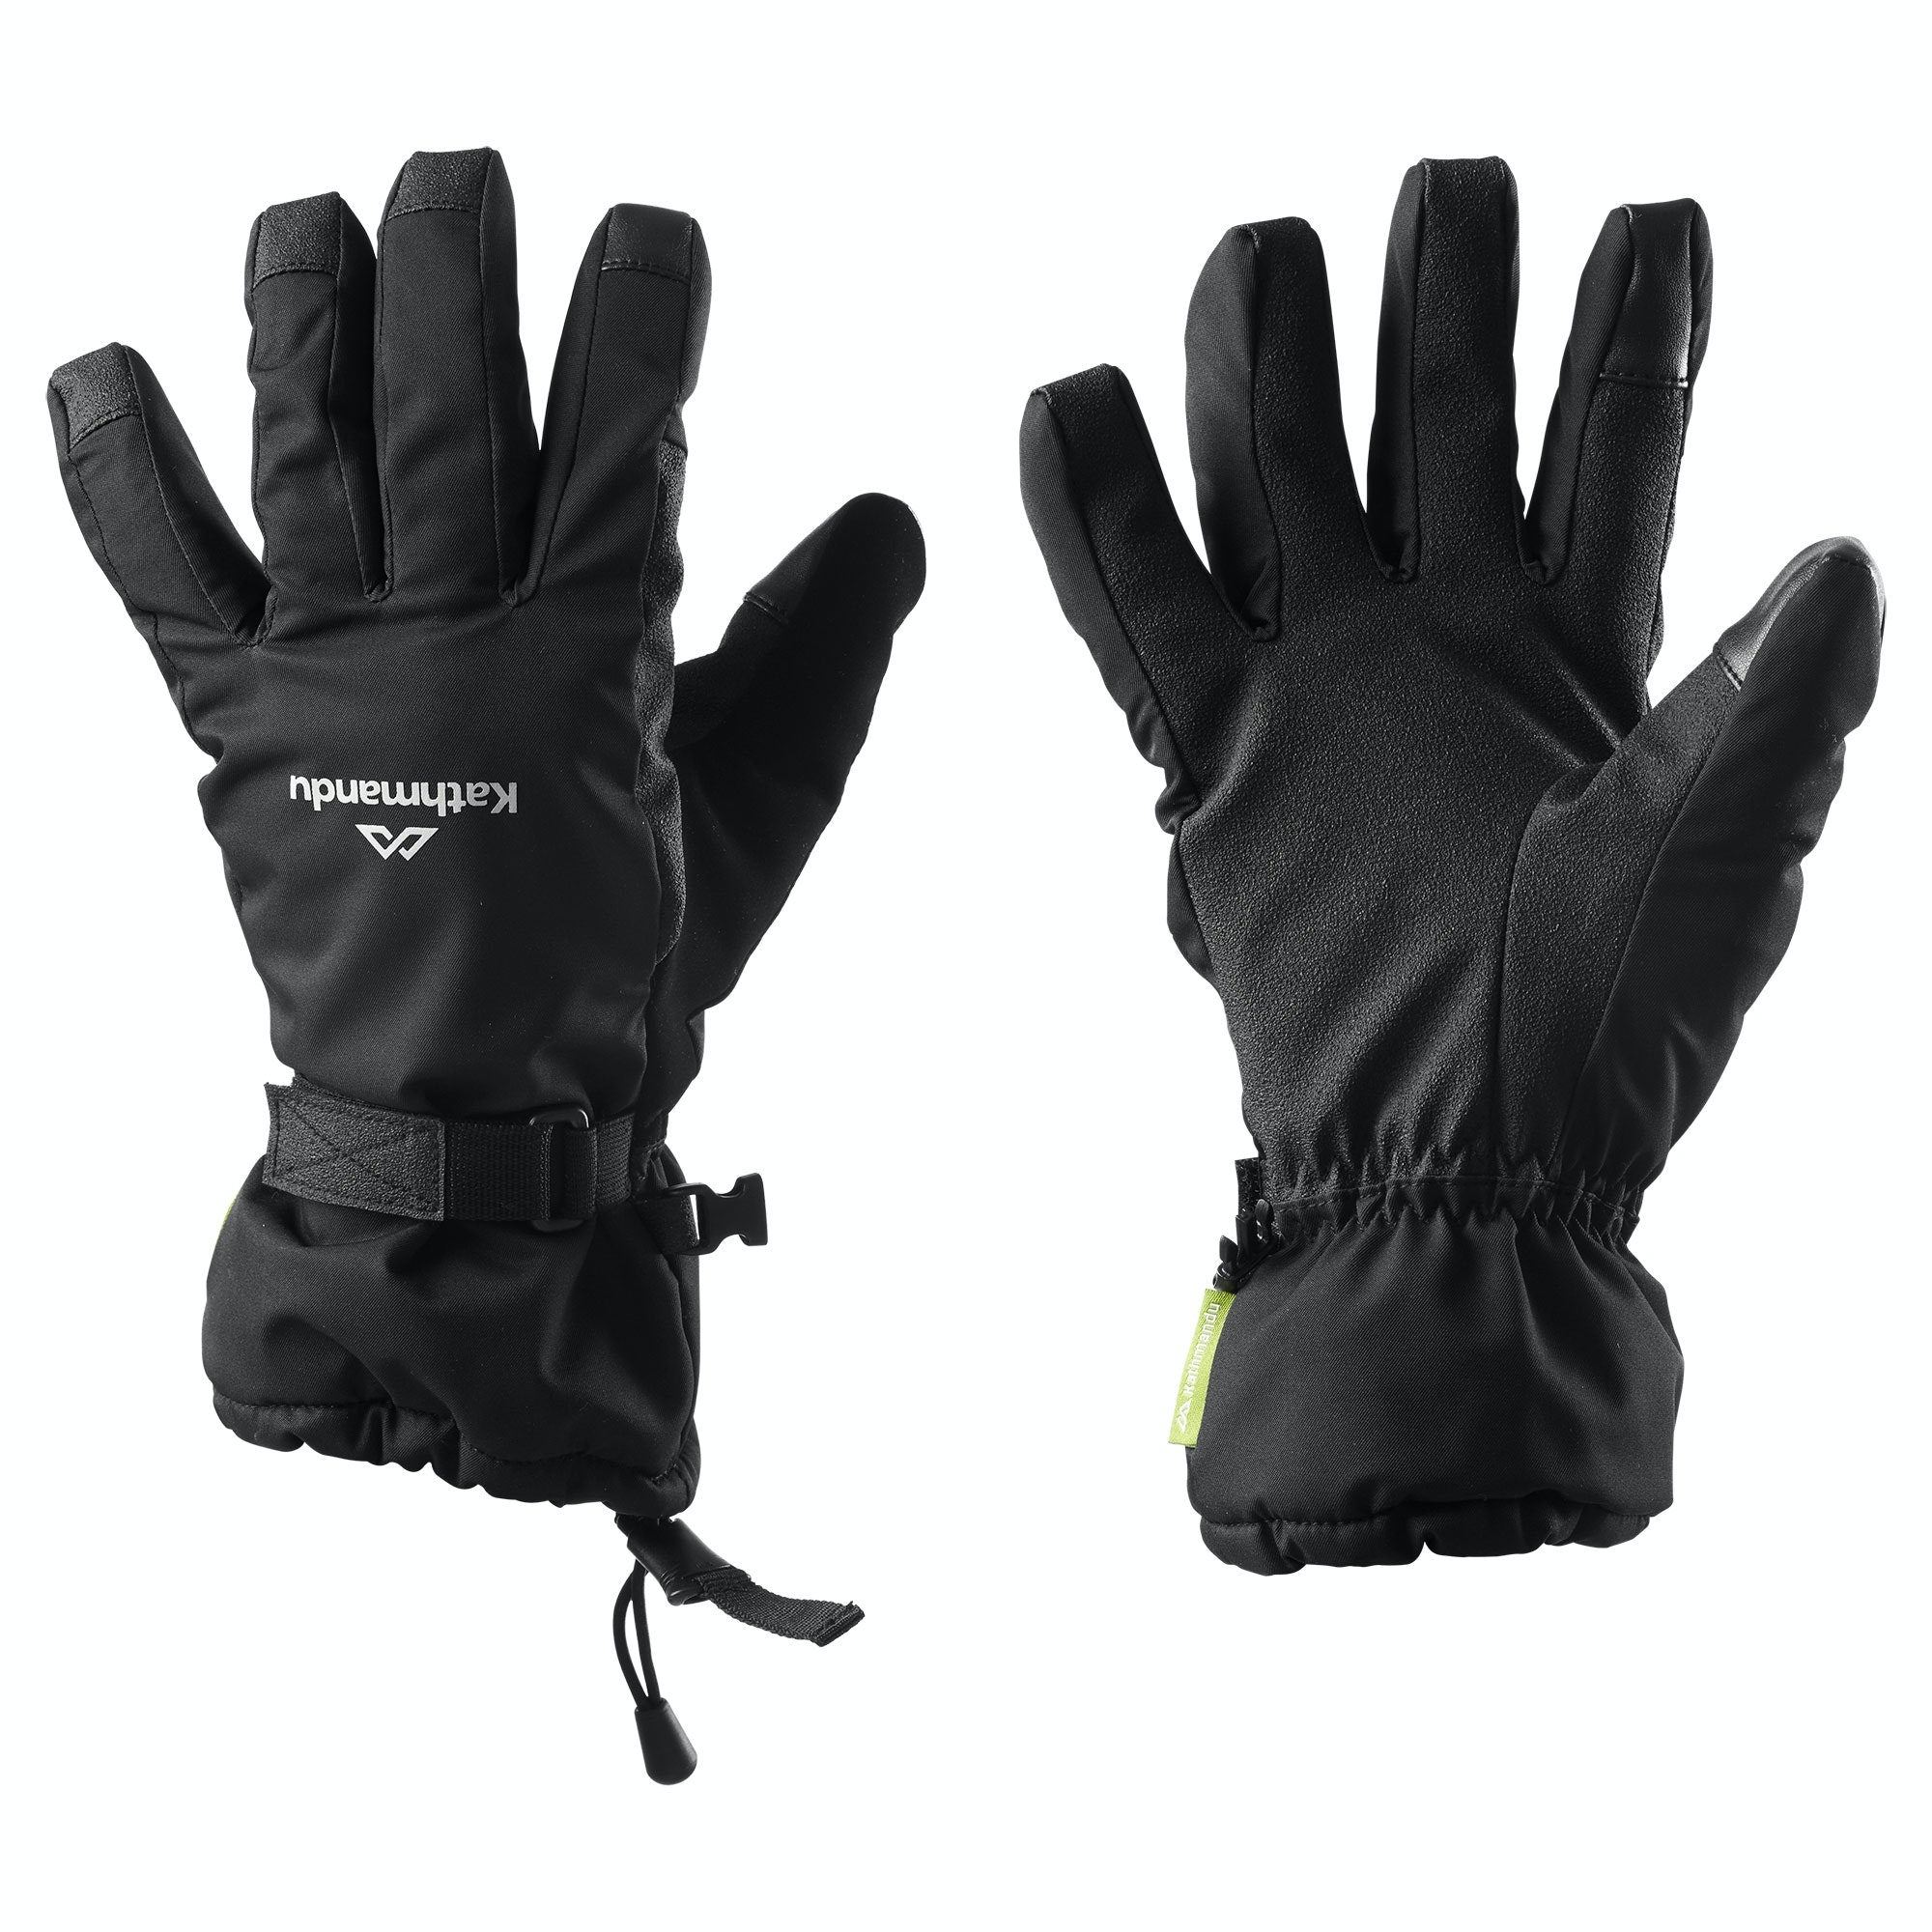 View more of the Classic Snow Gloves V2